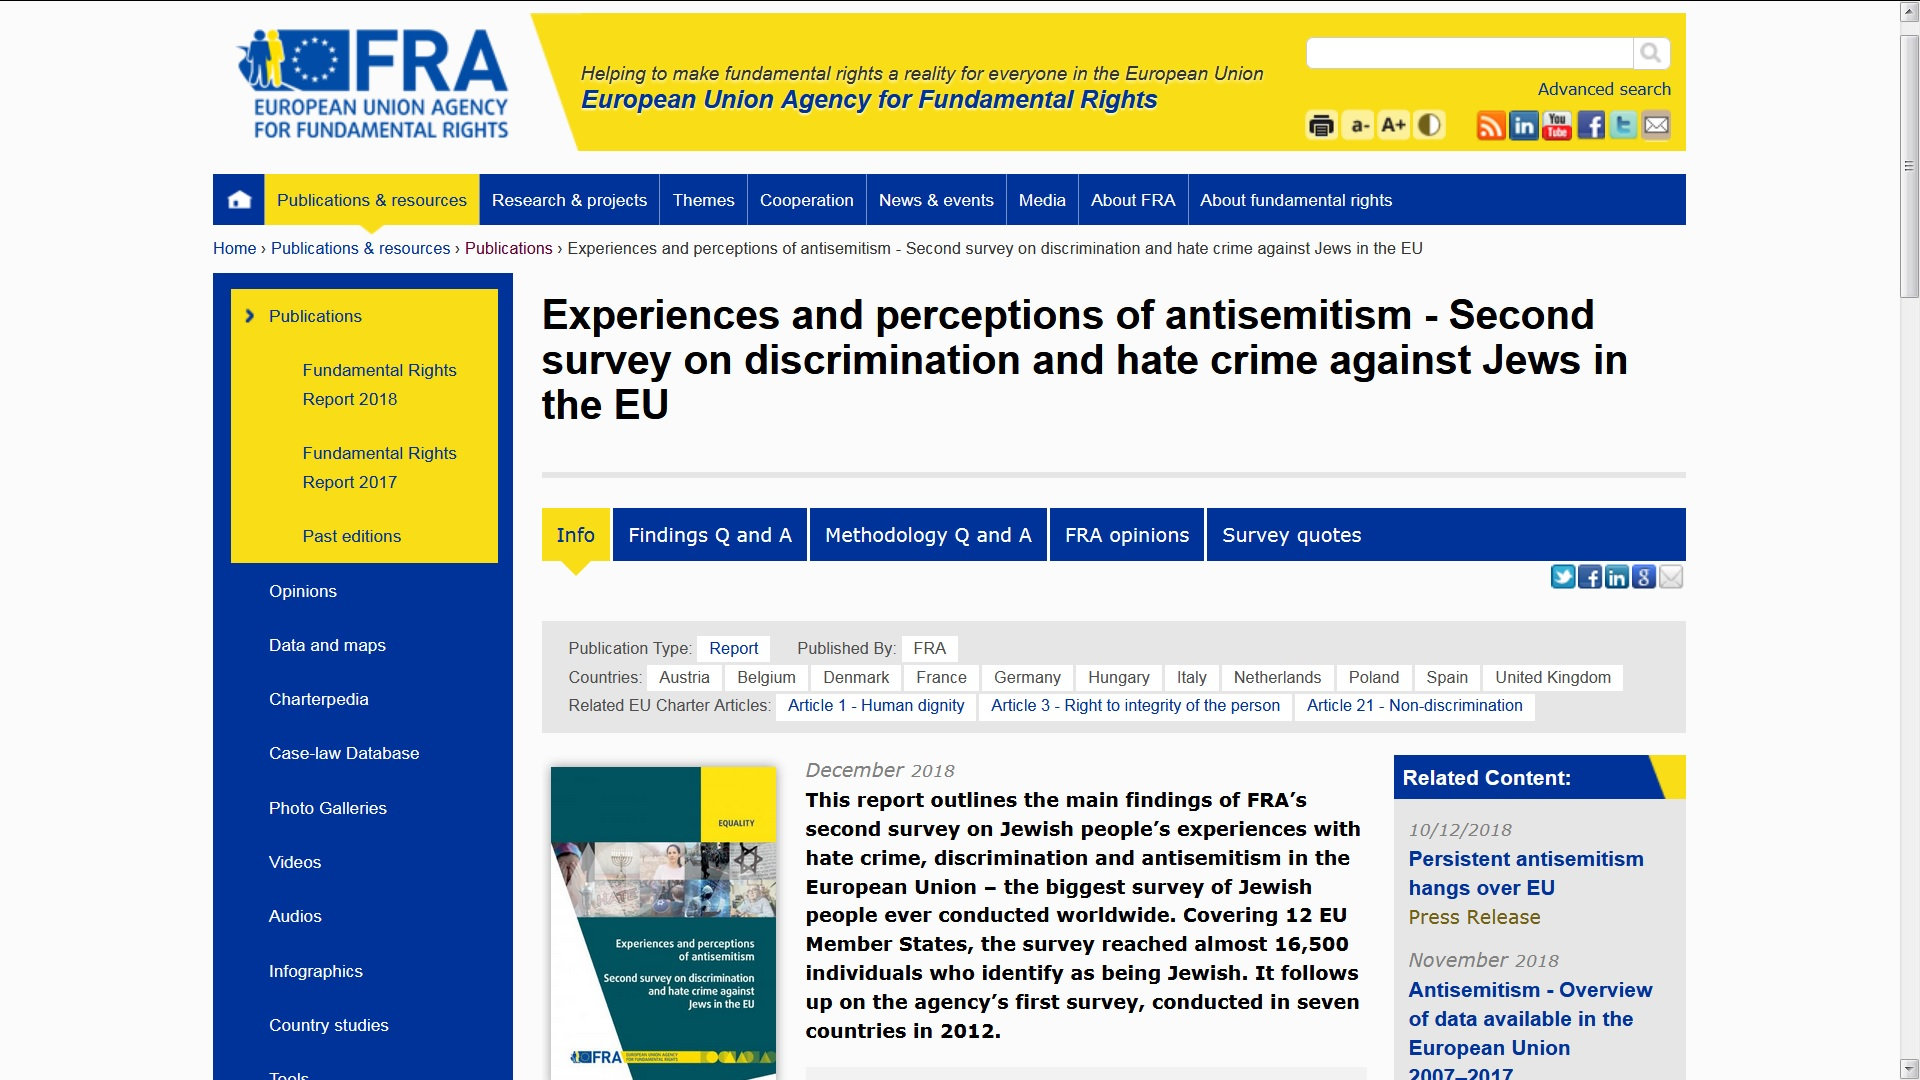 Screenshot FRA: https://fra.europa.eu/en/publication/2018/2nd-survey-discrimination-hate-crime-against-jews